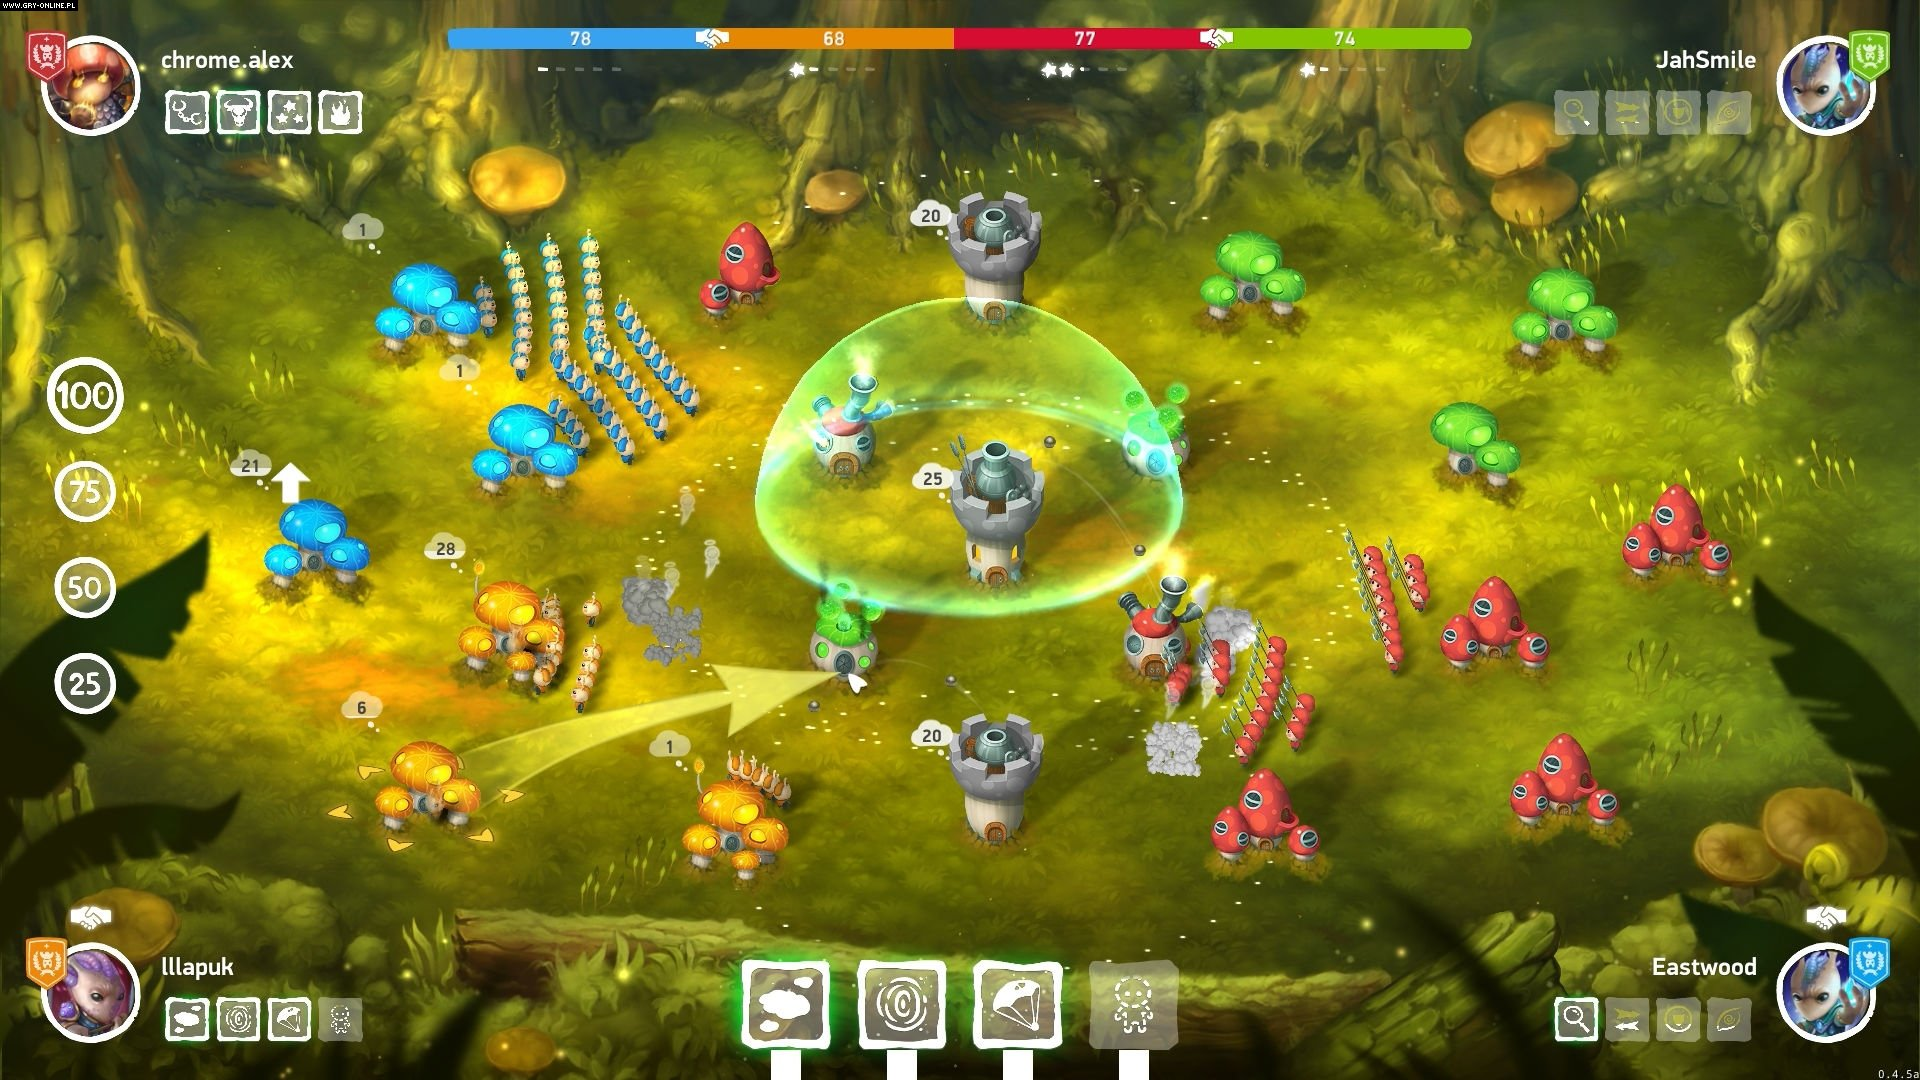 Mushroom Wars 2 PC, XONE, PS4, iOS, AND Games Image 3/3, Creat Studio, Zillion Whales